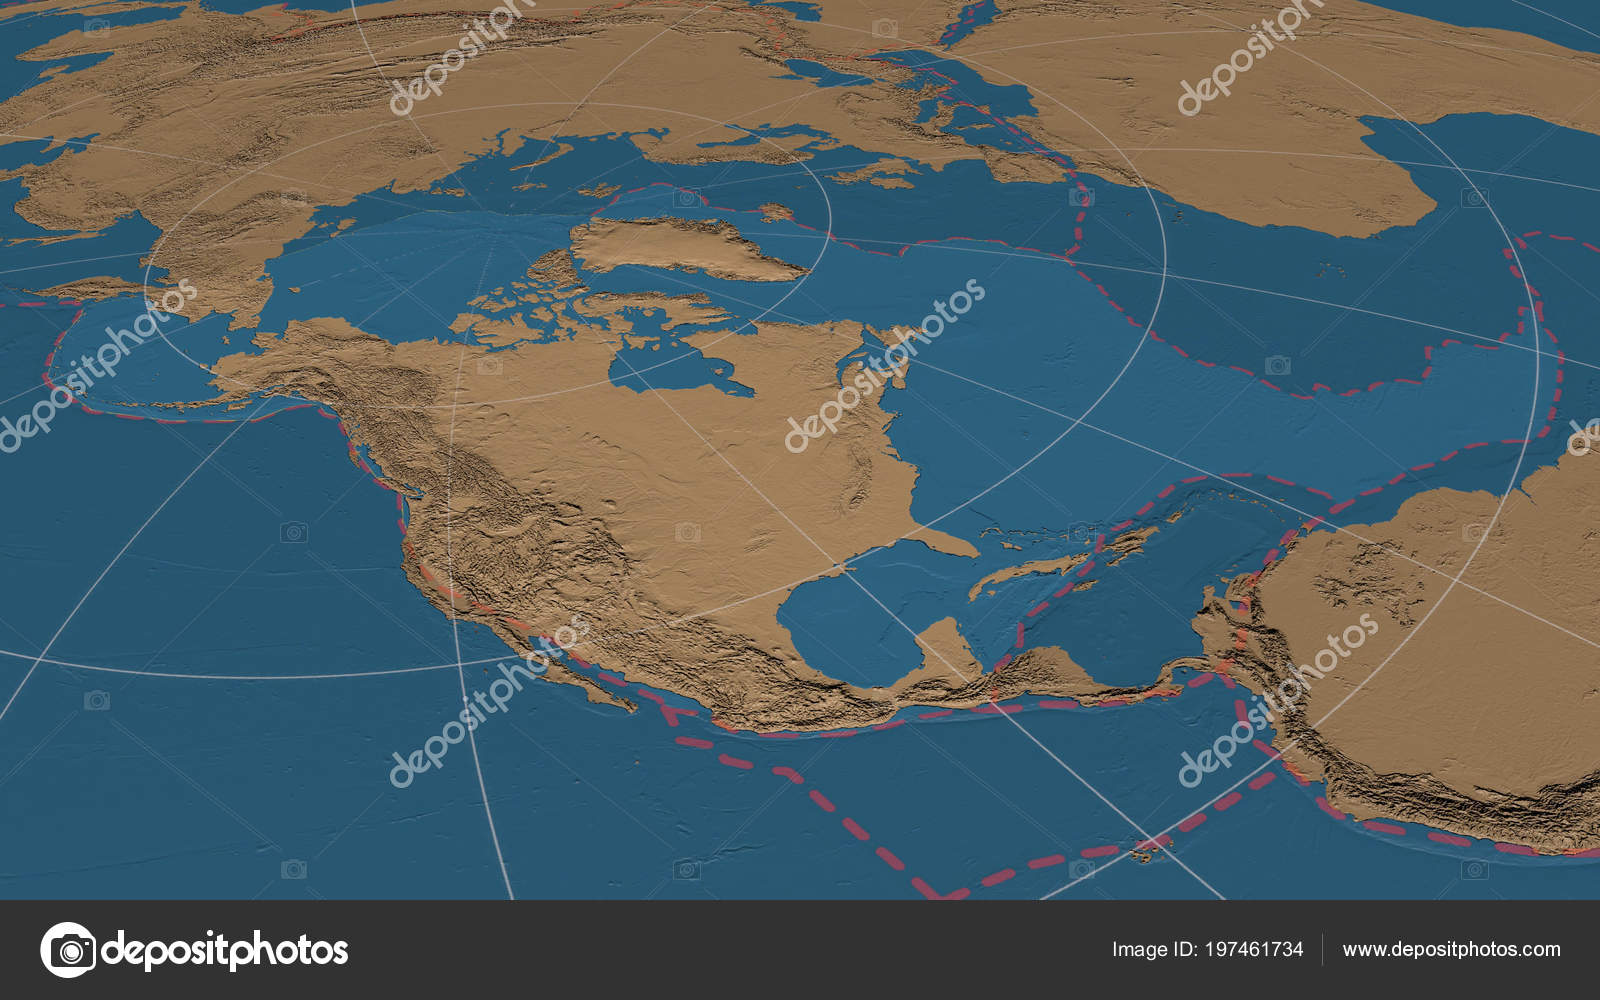 North American Tectonic Plate Enlarged Enlarged Global Grayscale ...